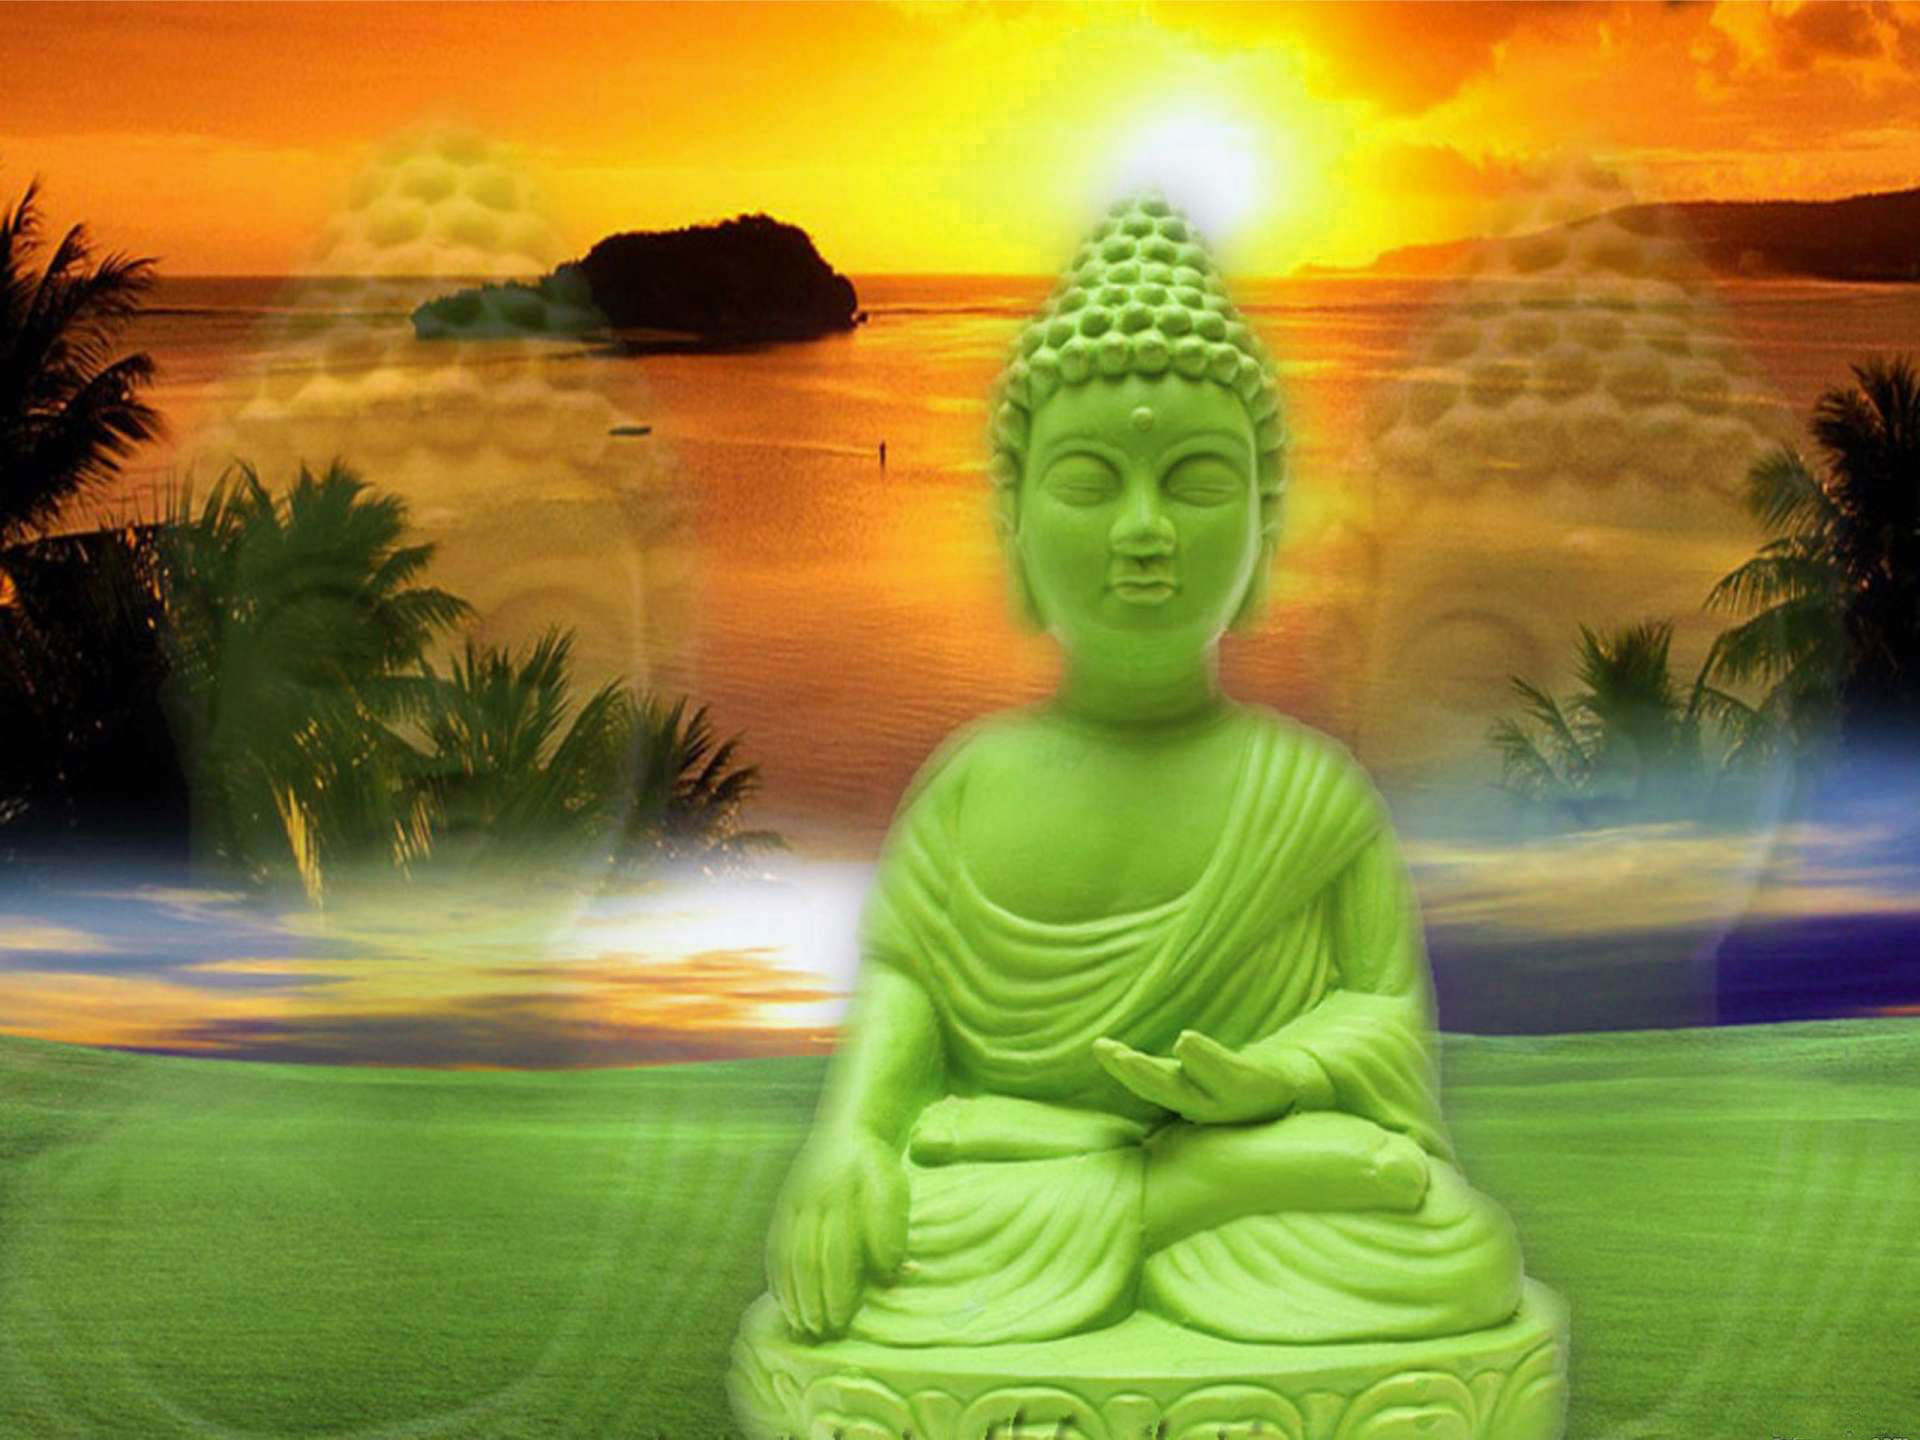 Free-Download-Buddha-Quotes-HD-%C3%97-Of-wallpaper-wpc9005202